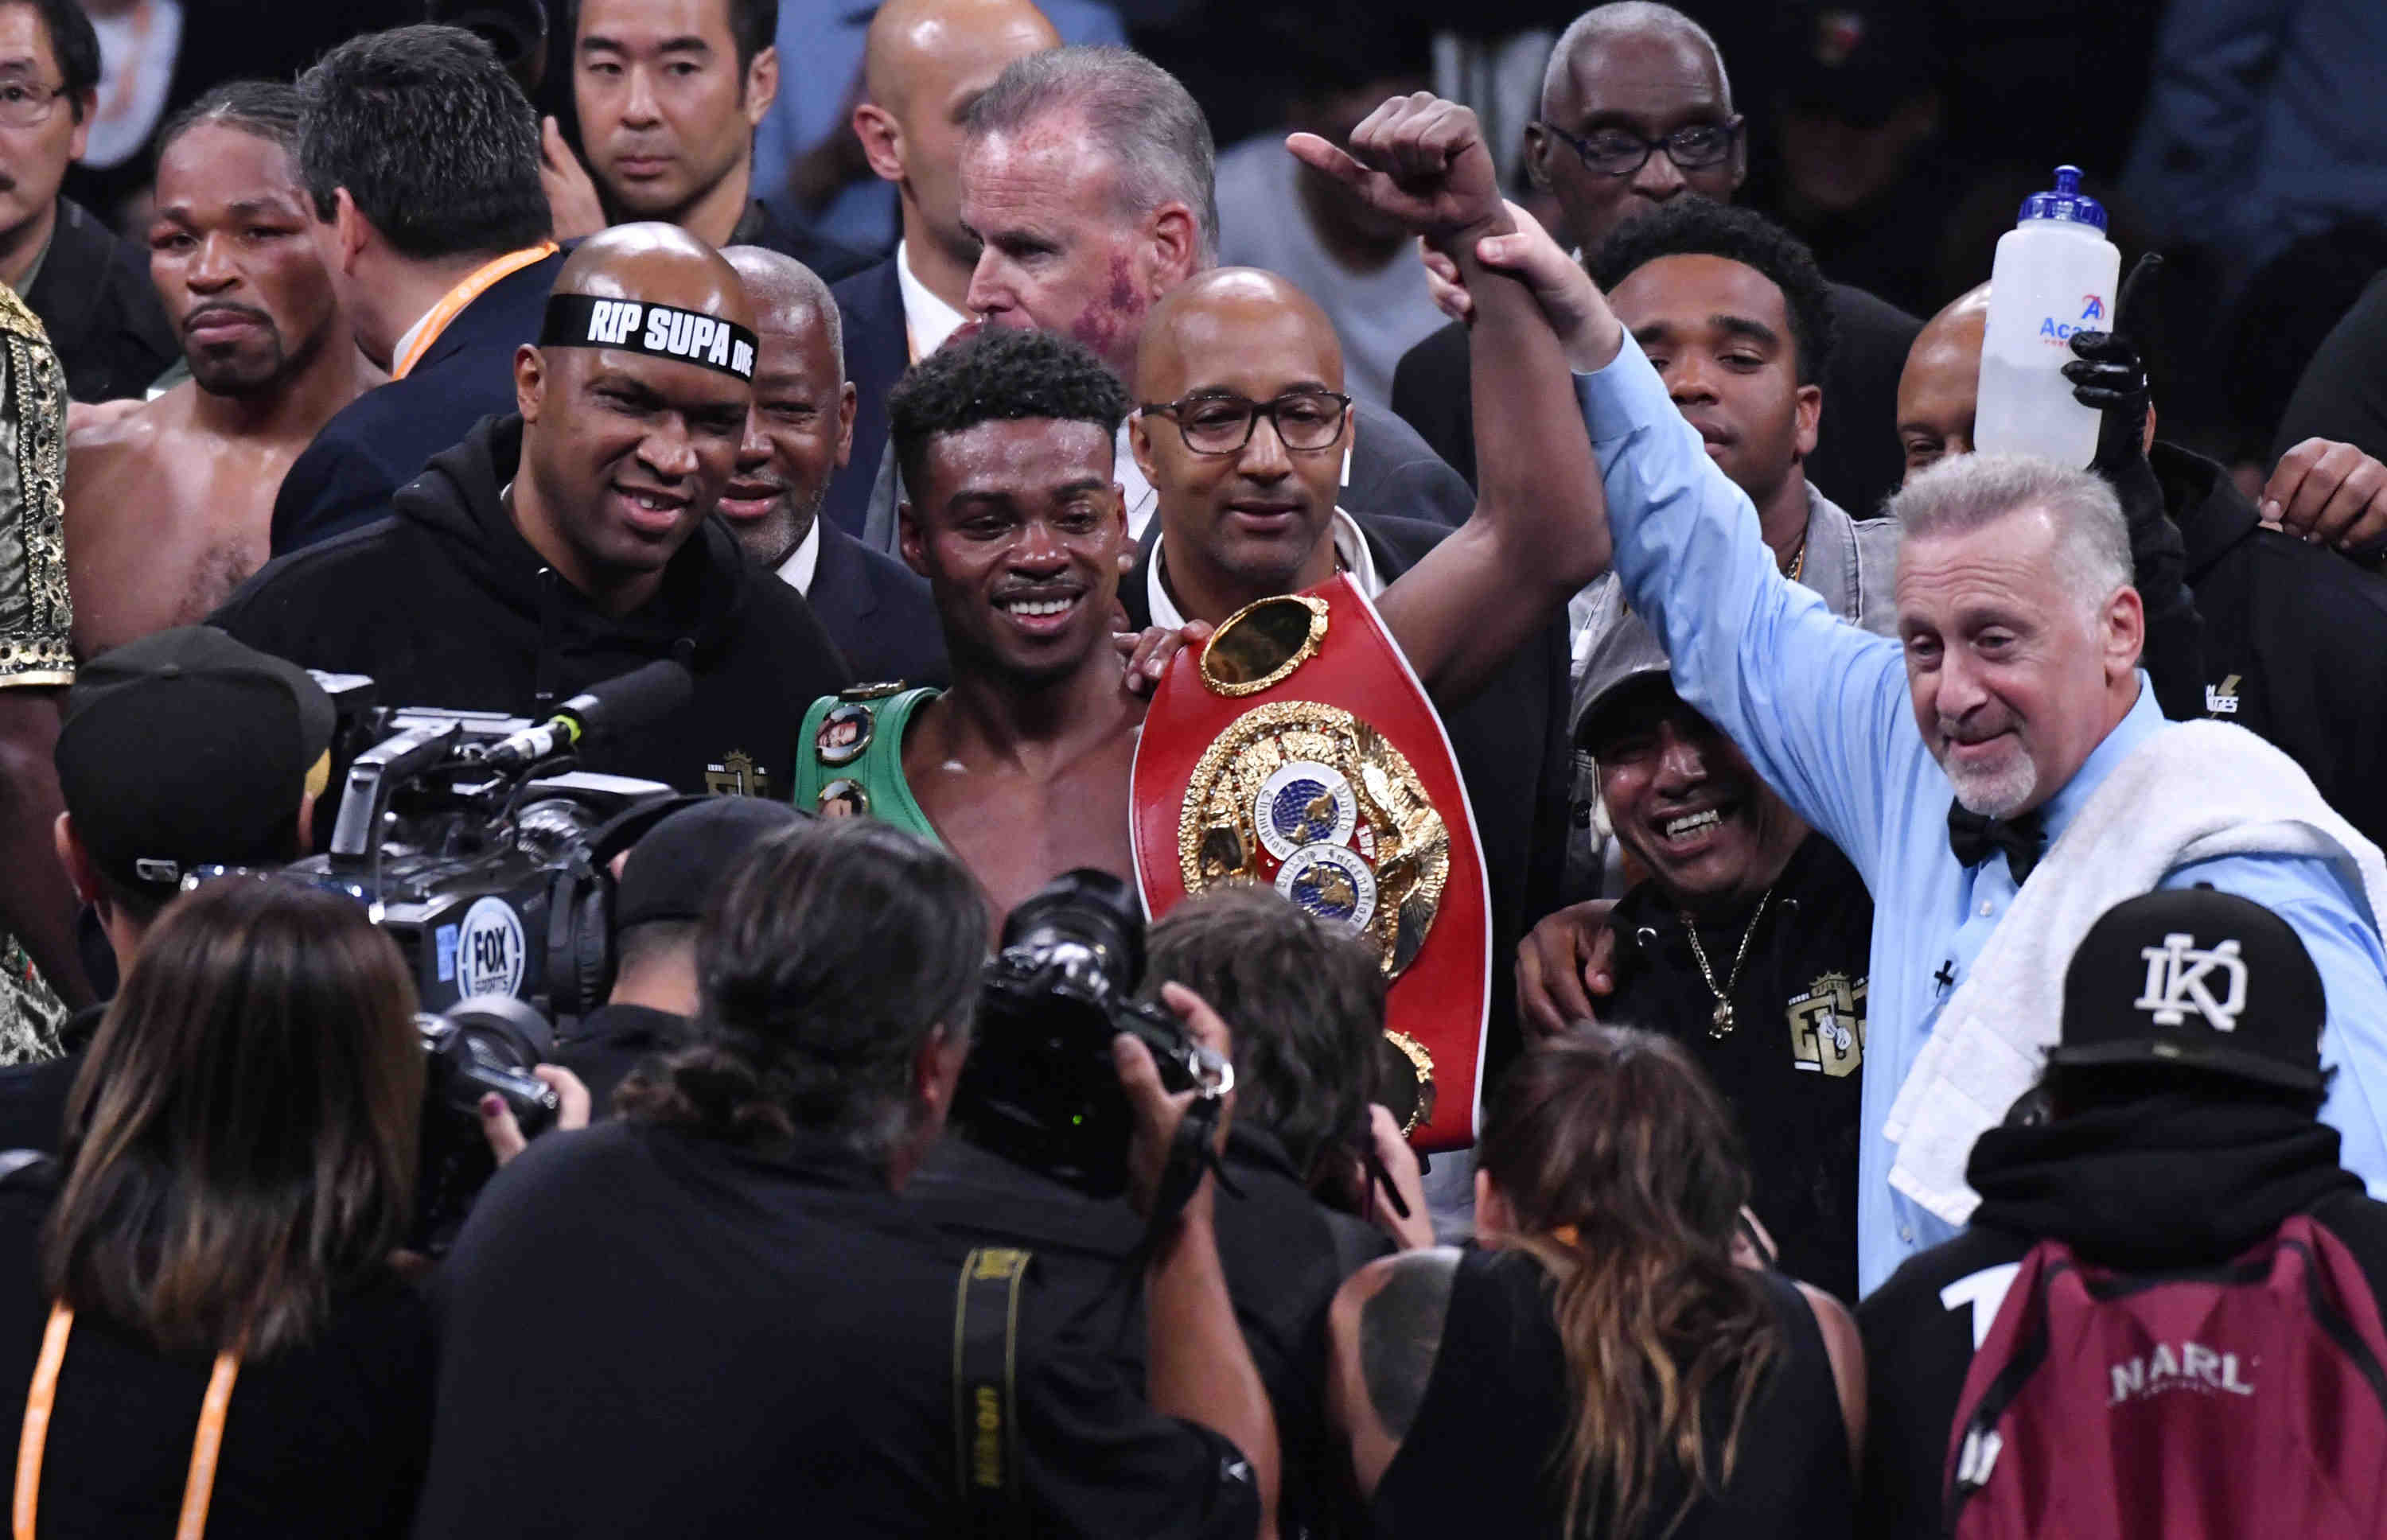 Errol Spence Jr. win over Shawn Porter to unify welterweight titles makes him eans split decision